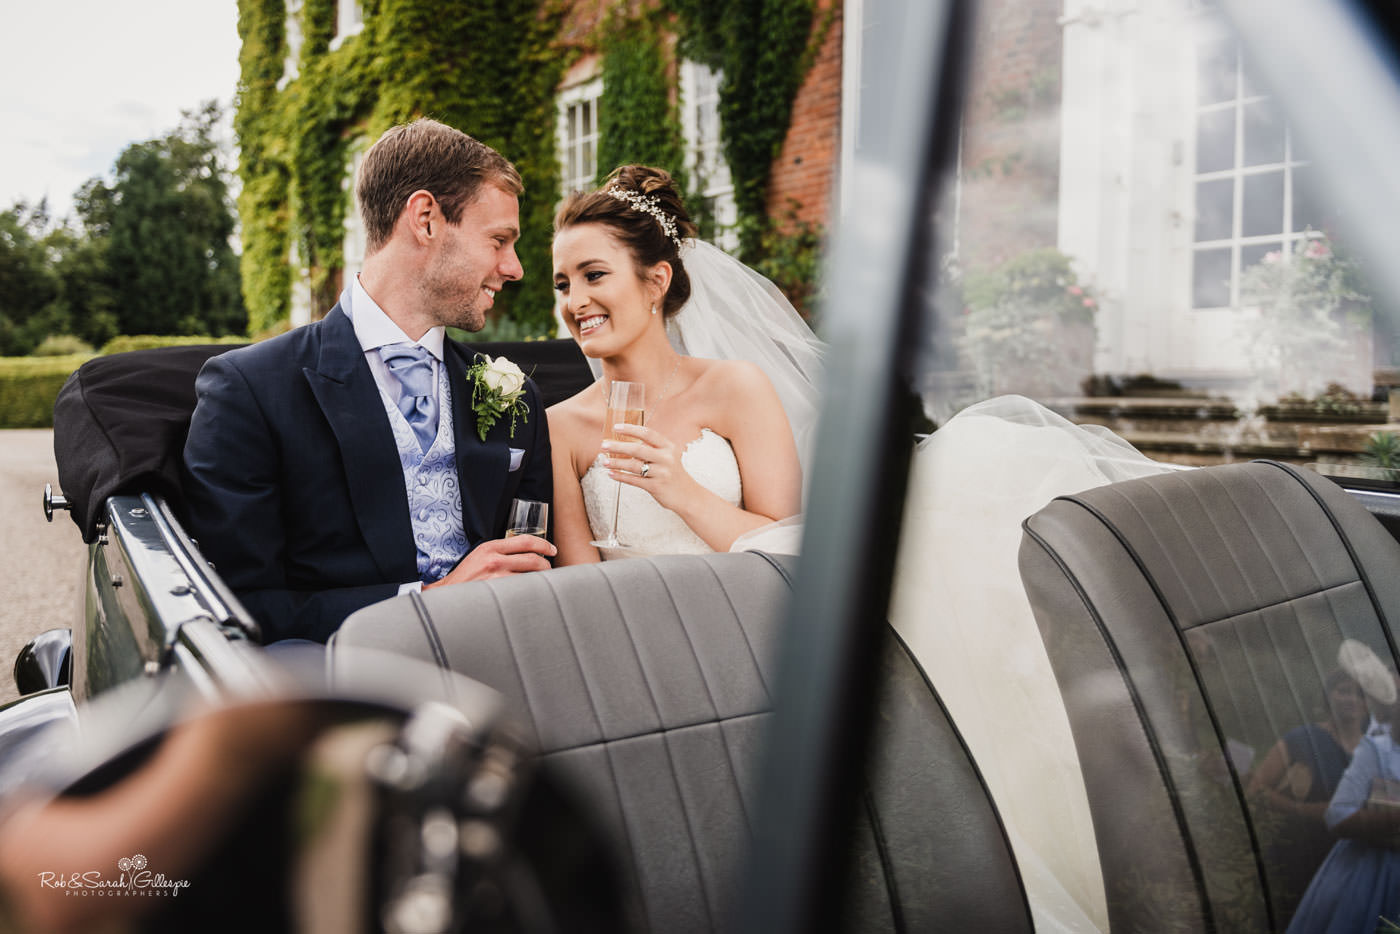 Bride and groom in weding cat at Delbury Hall